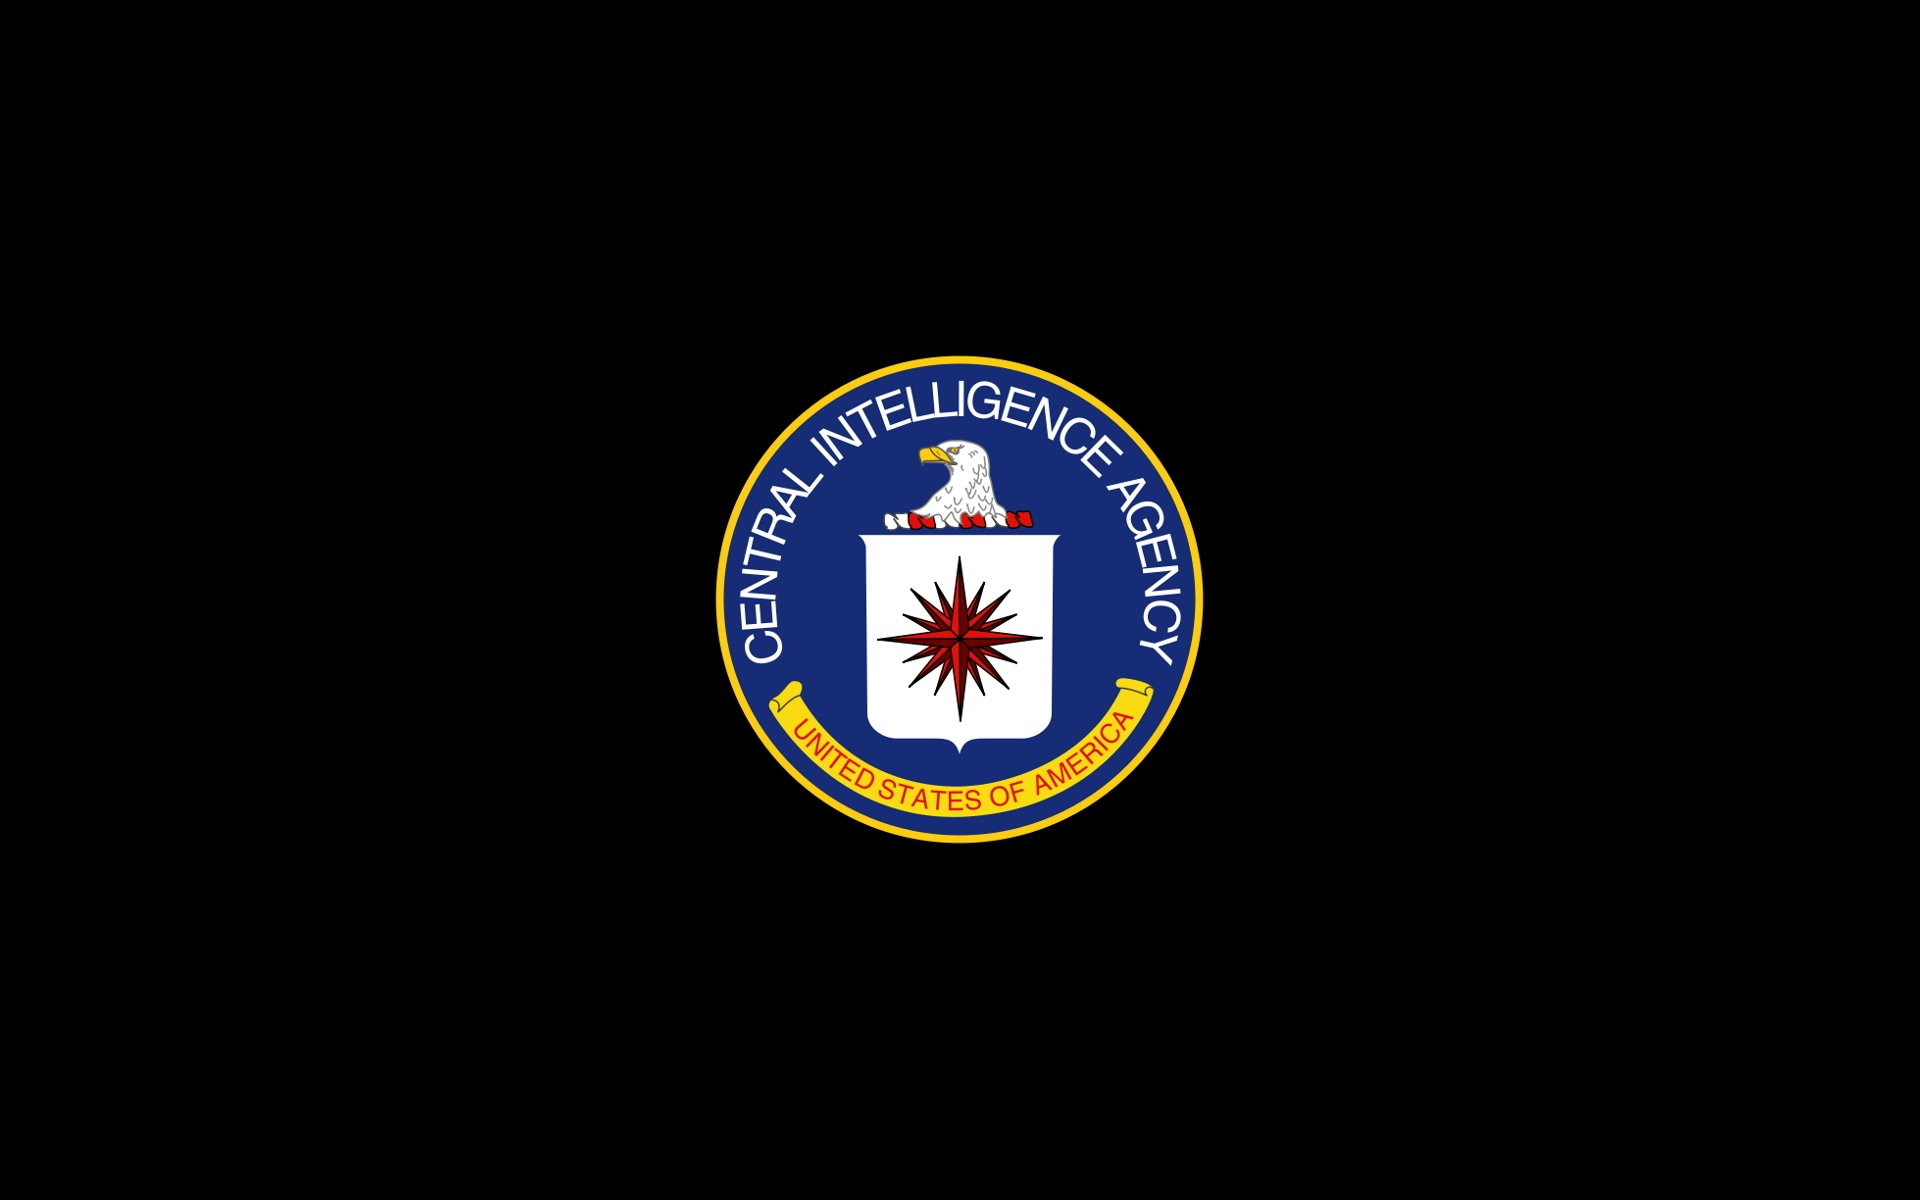 5 cia hd wallpapers background images